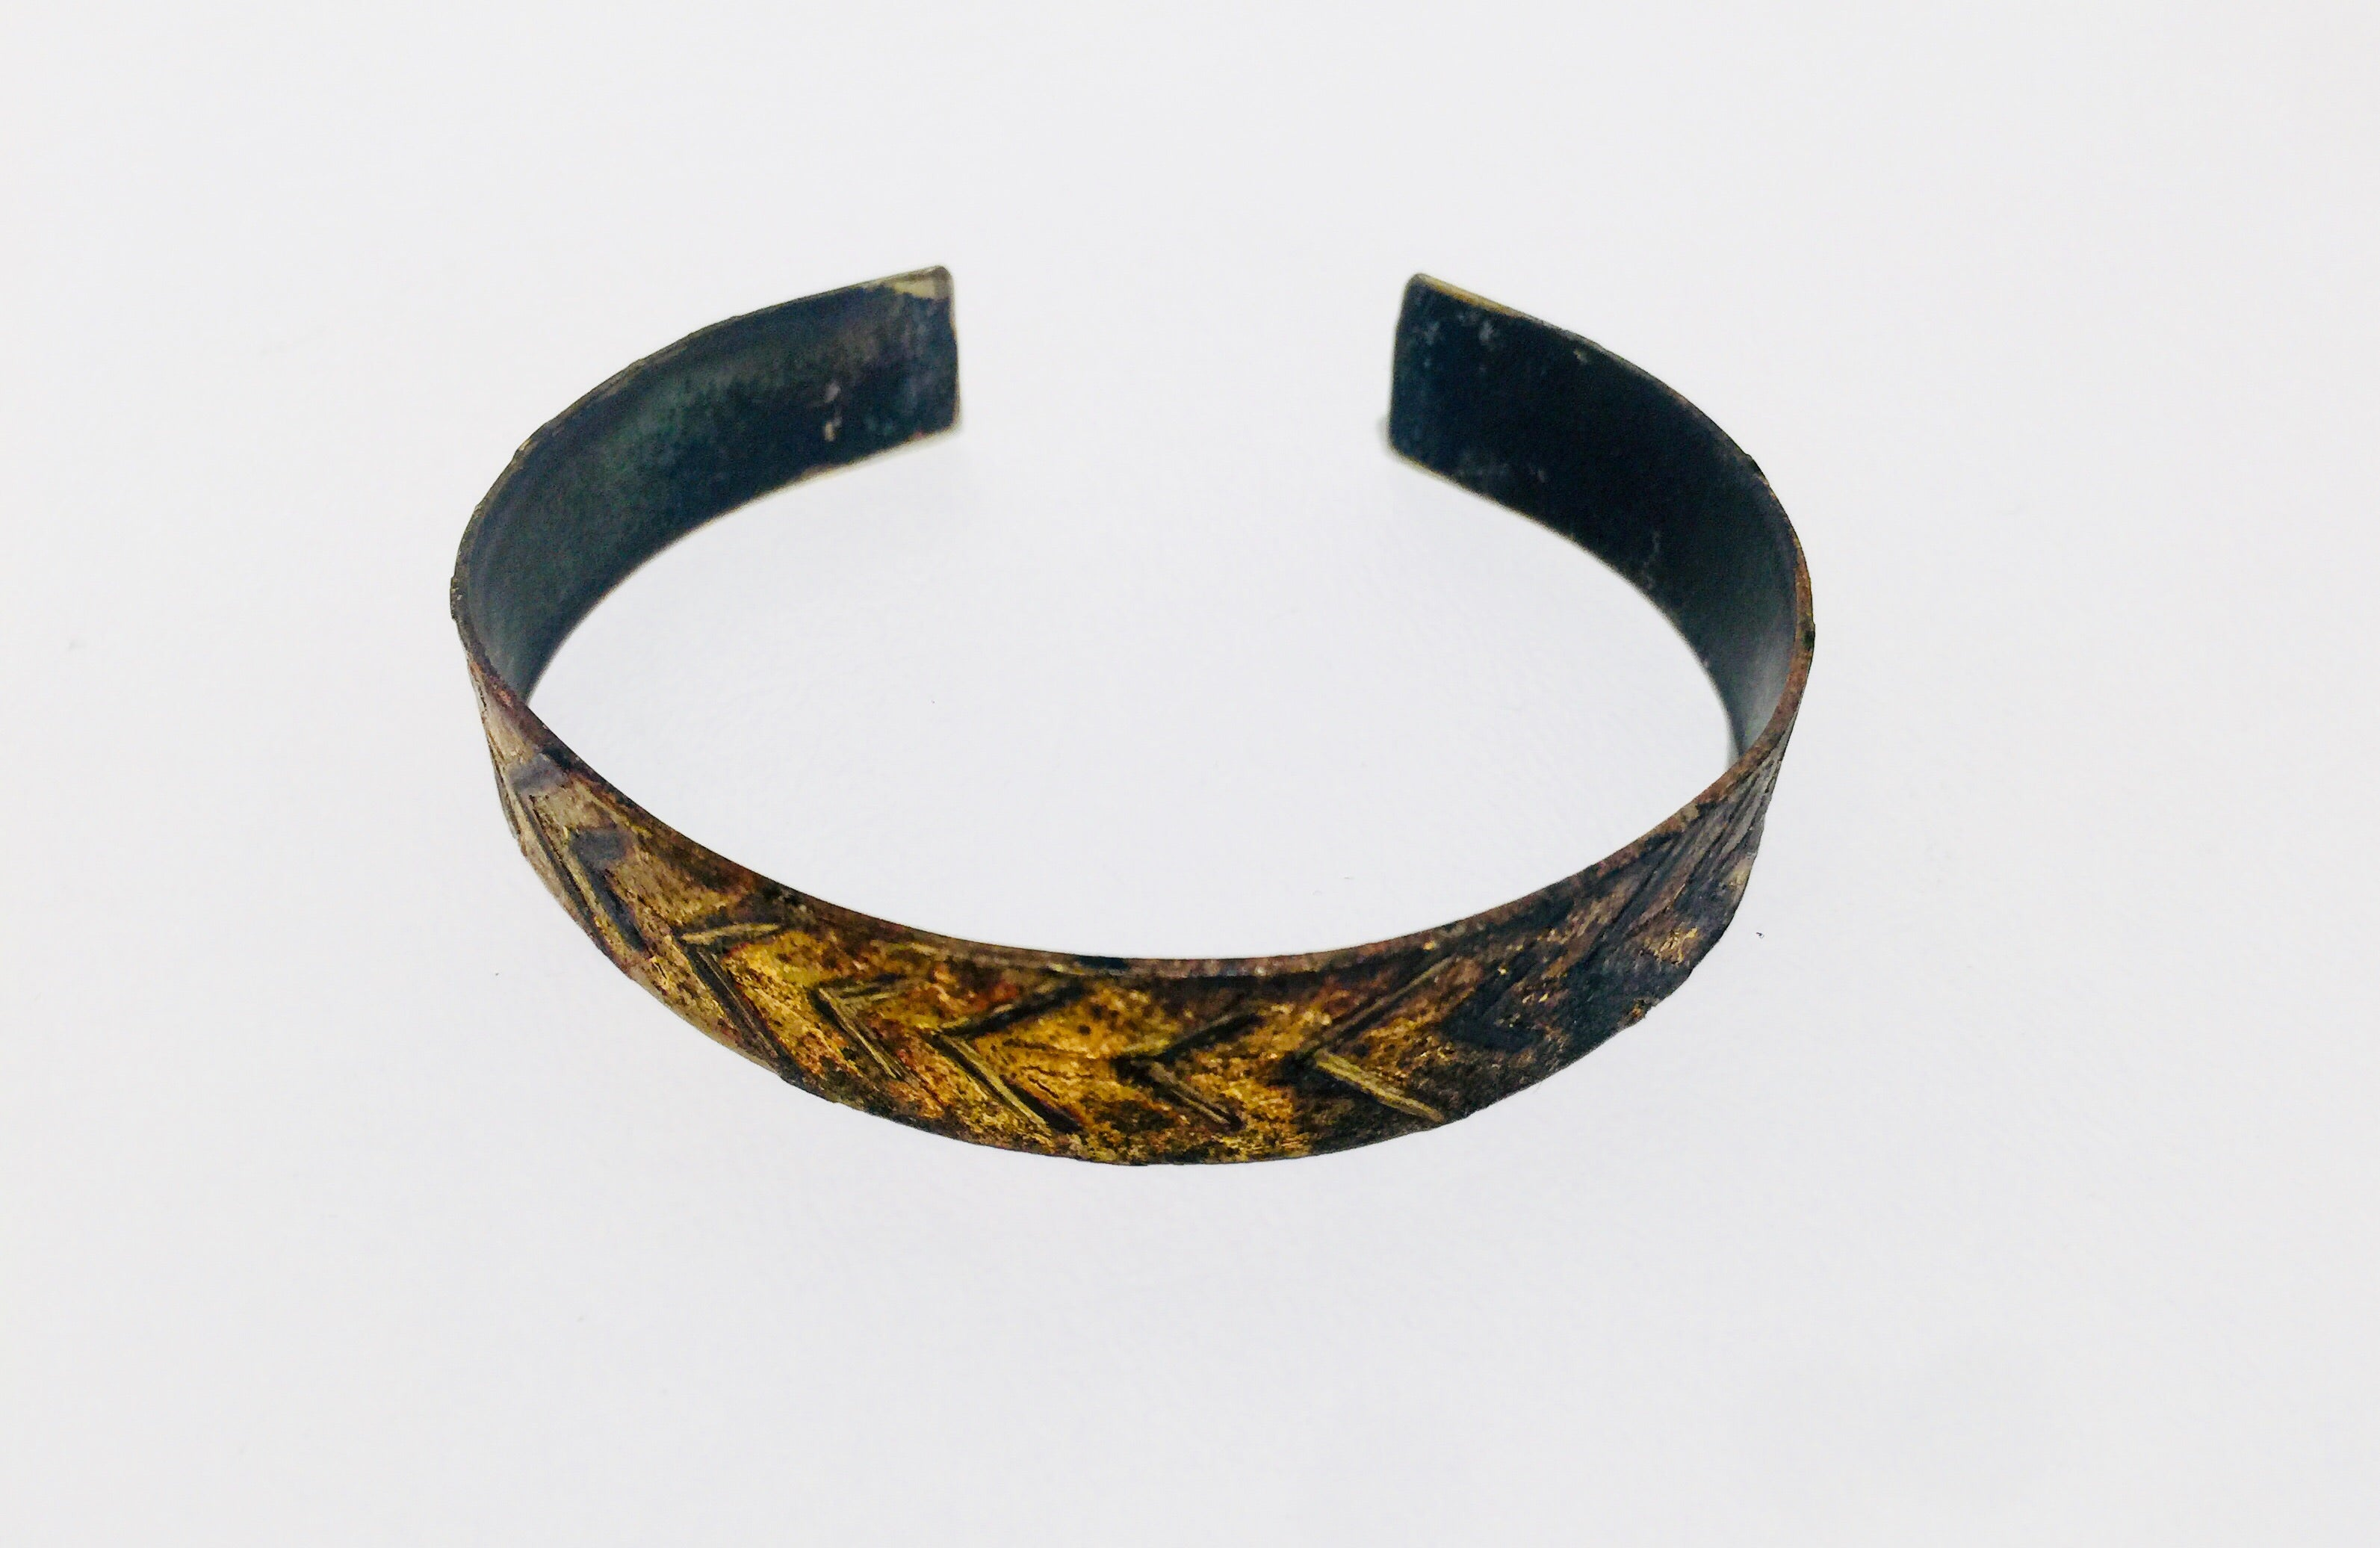 Bronze and Etched Cuff Bracelet Narrow